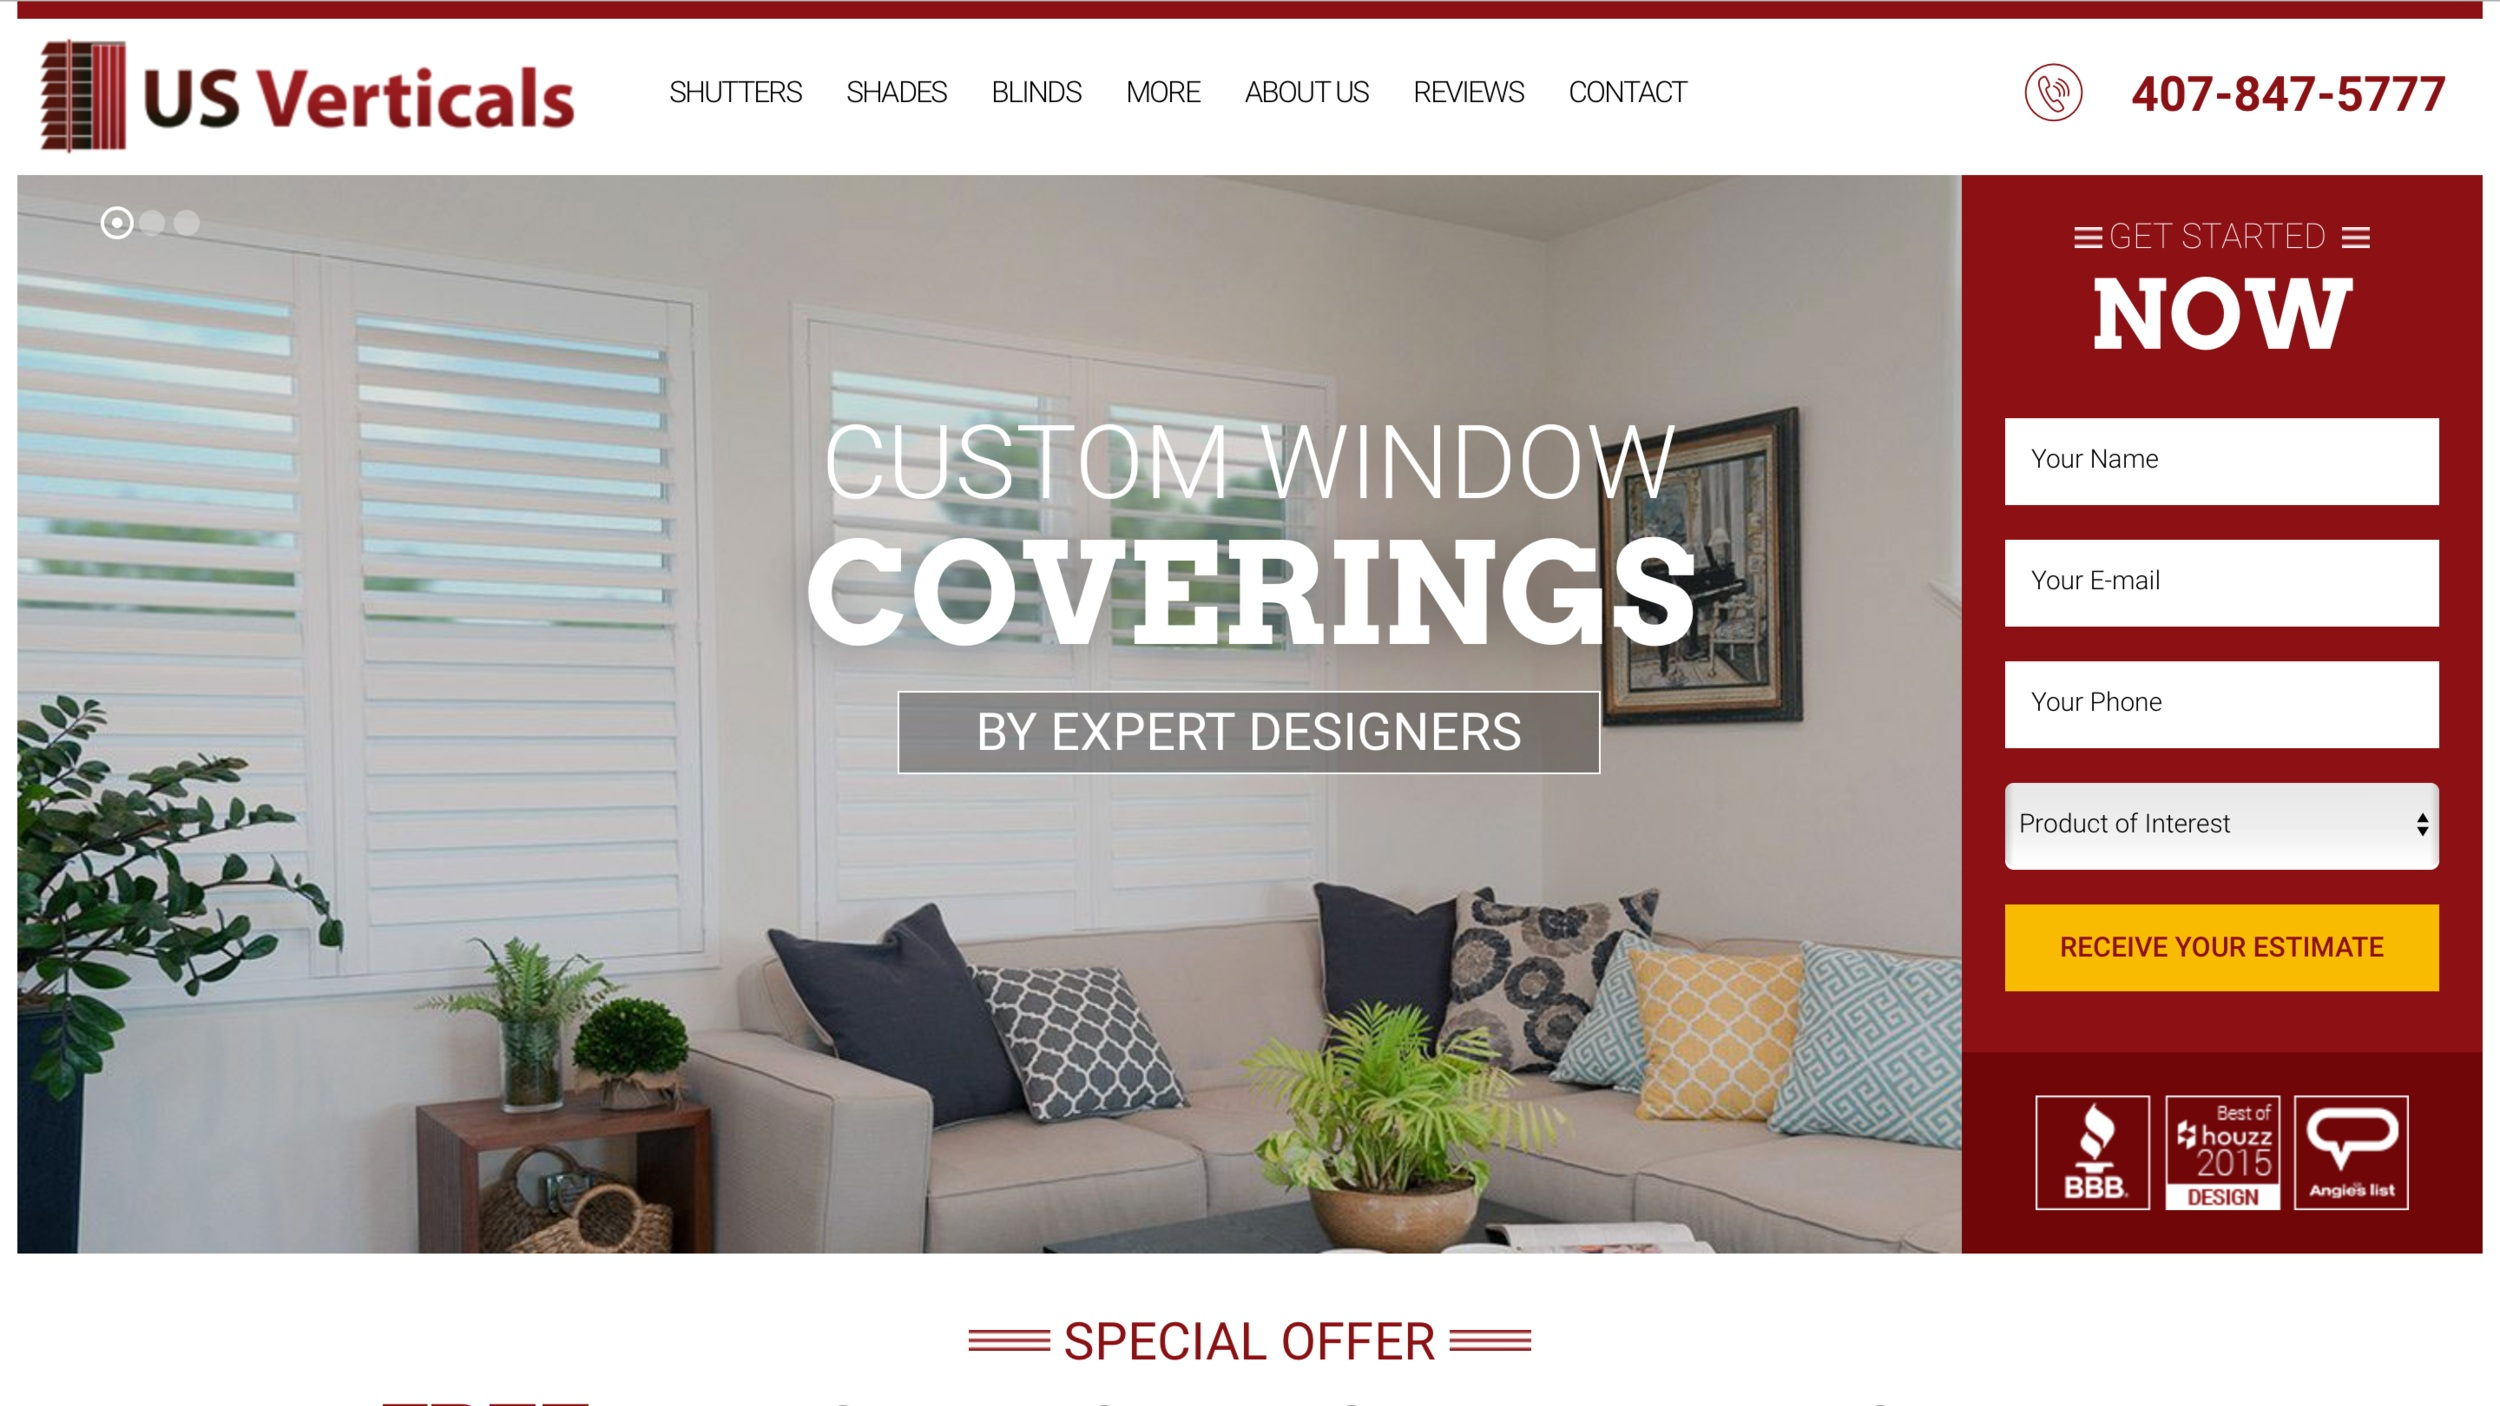 US Verticals  https://usverticals.com  Marketing communication for small businesses in the home services and home decor industries.